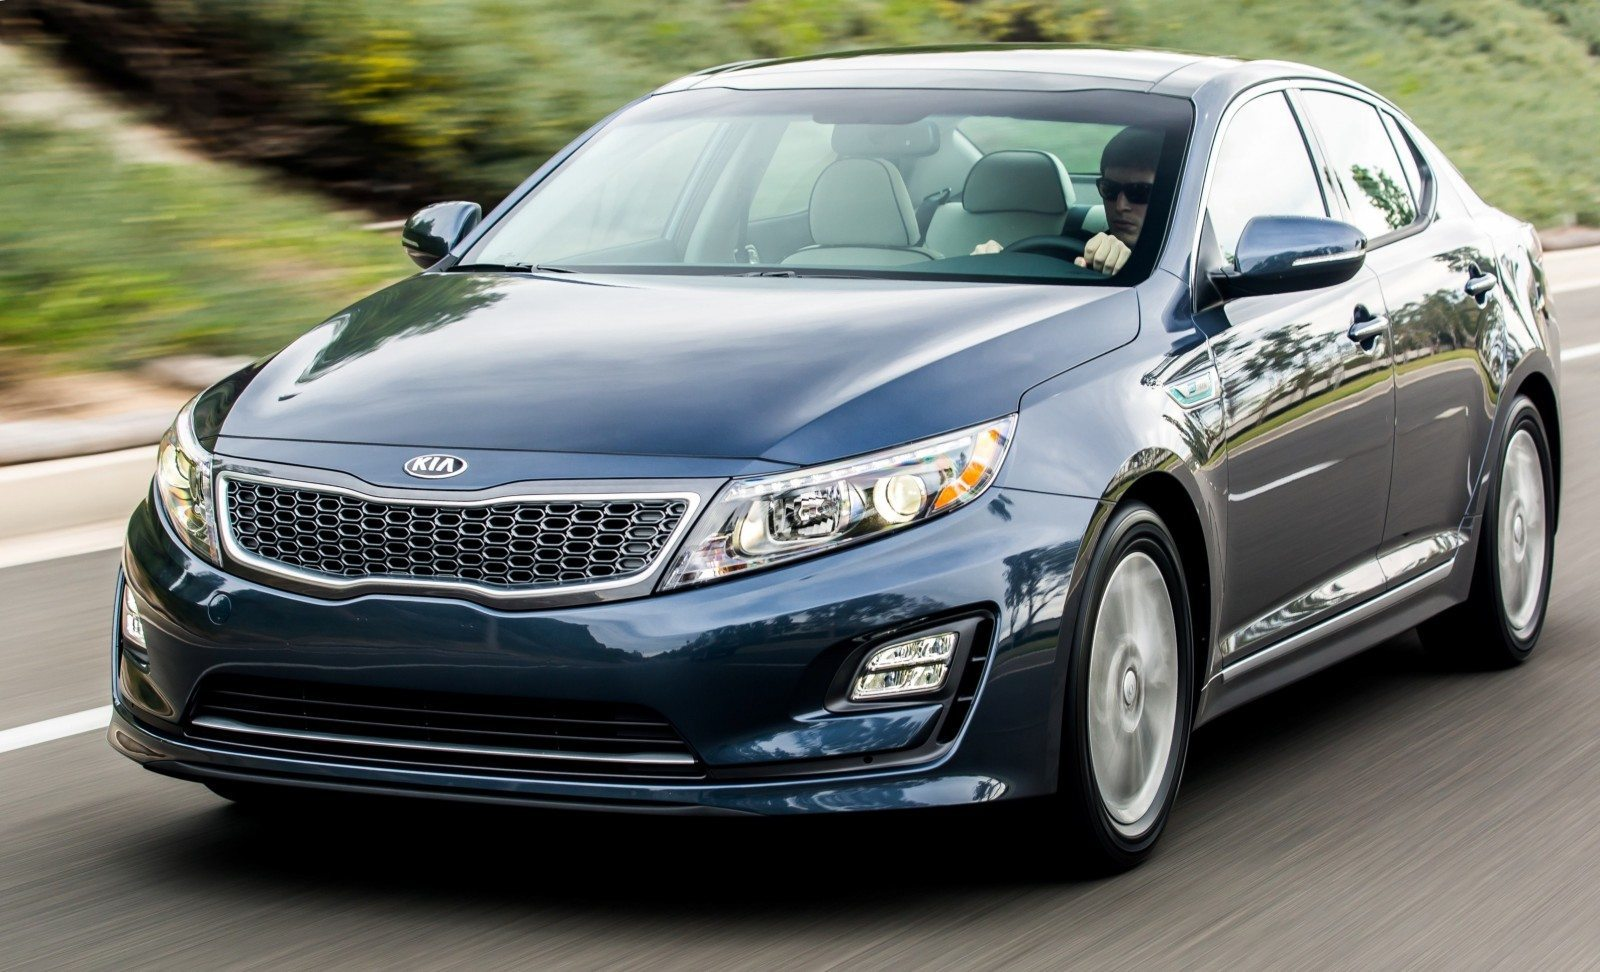 2014 Kia Optima Hybrid Updated With New Grille and LEDs Front and Rear - Specs, Features and Pricing 1